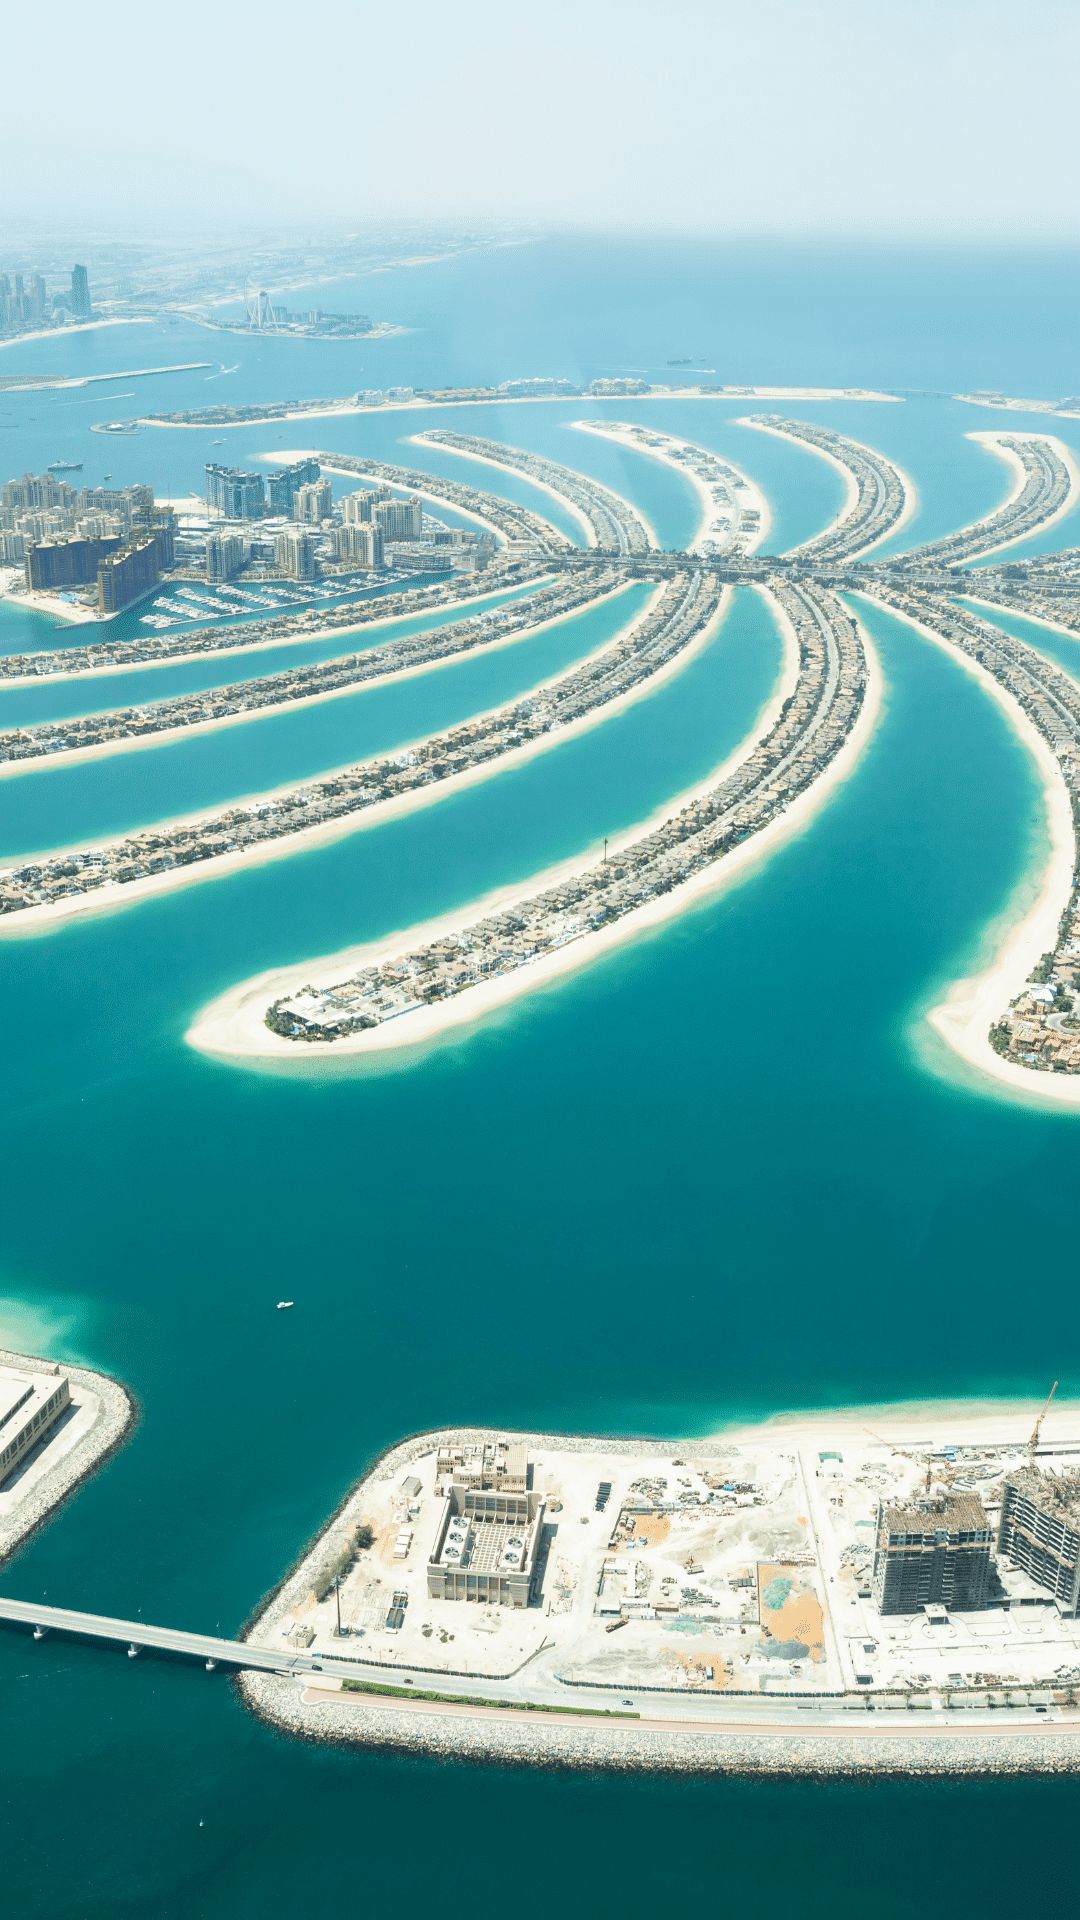 Dubai: From desert outpost to chic city of gold